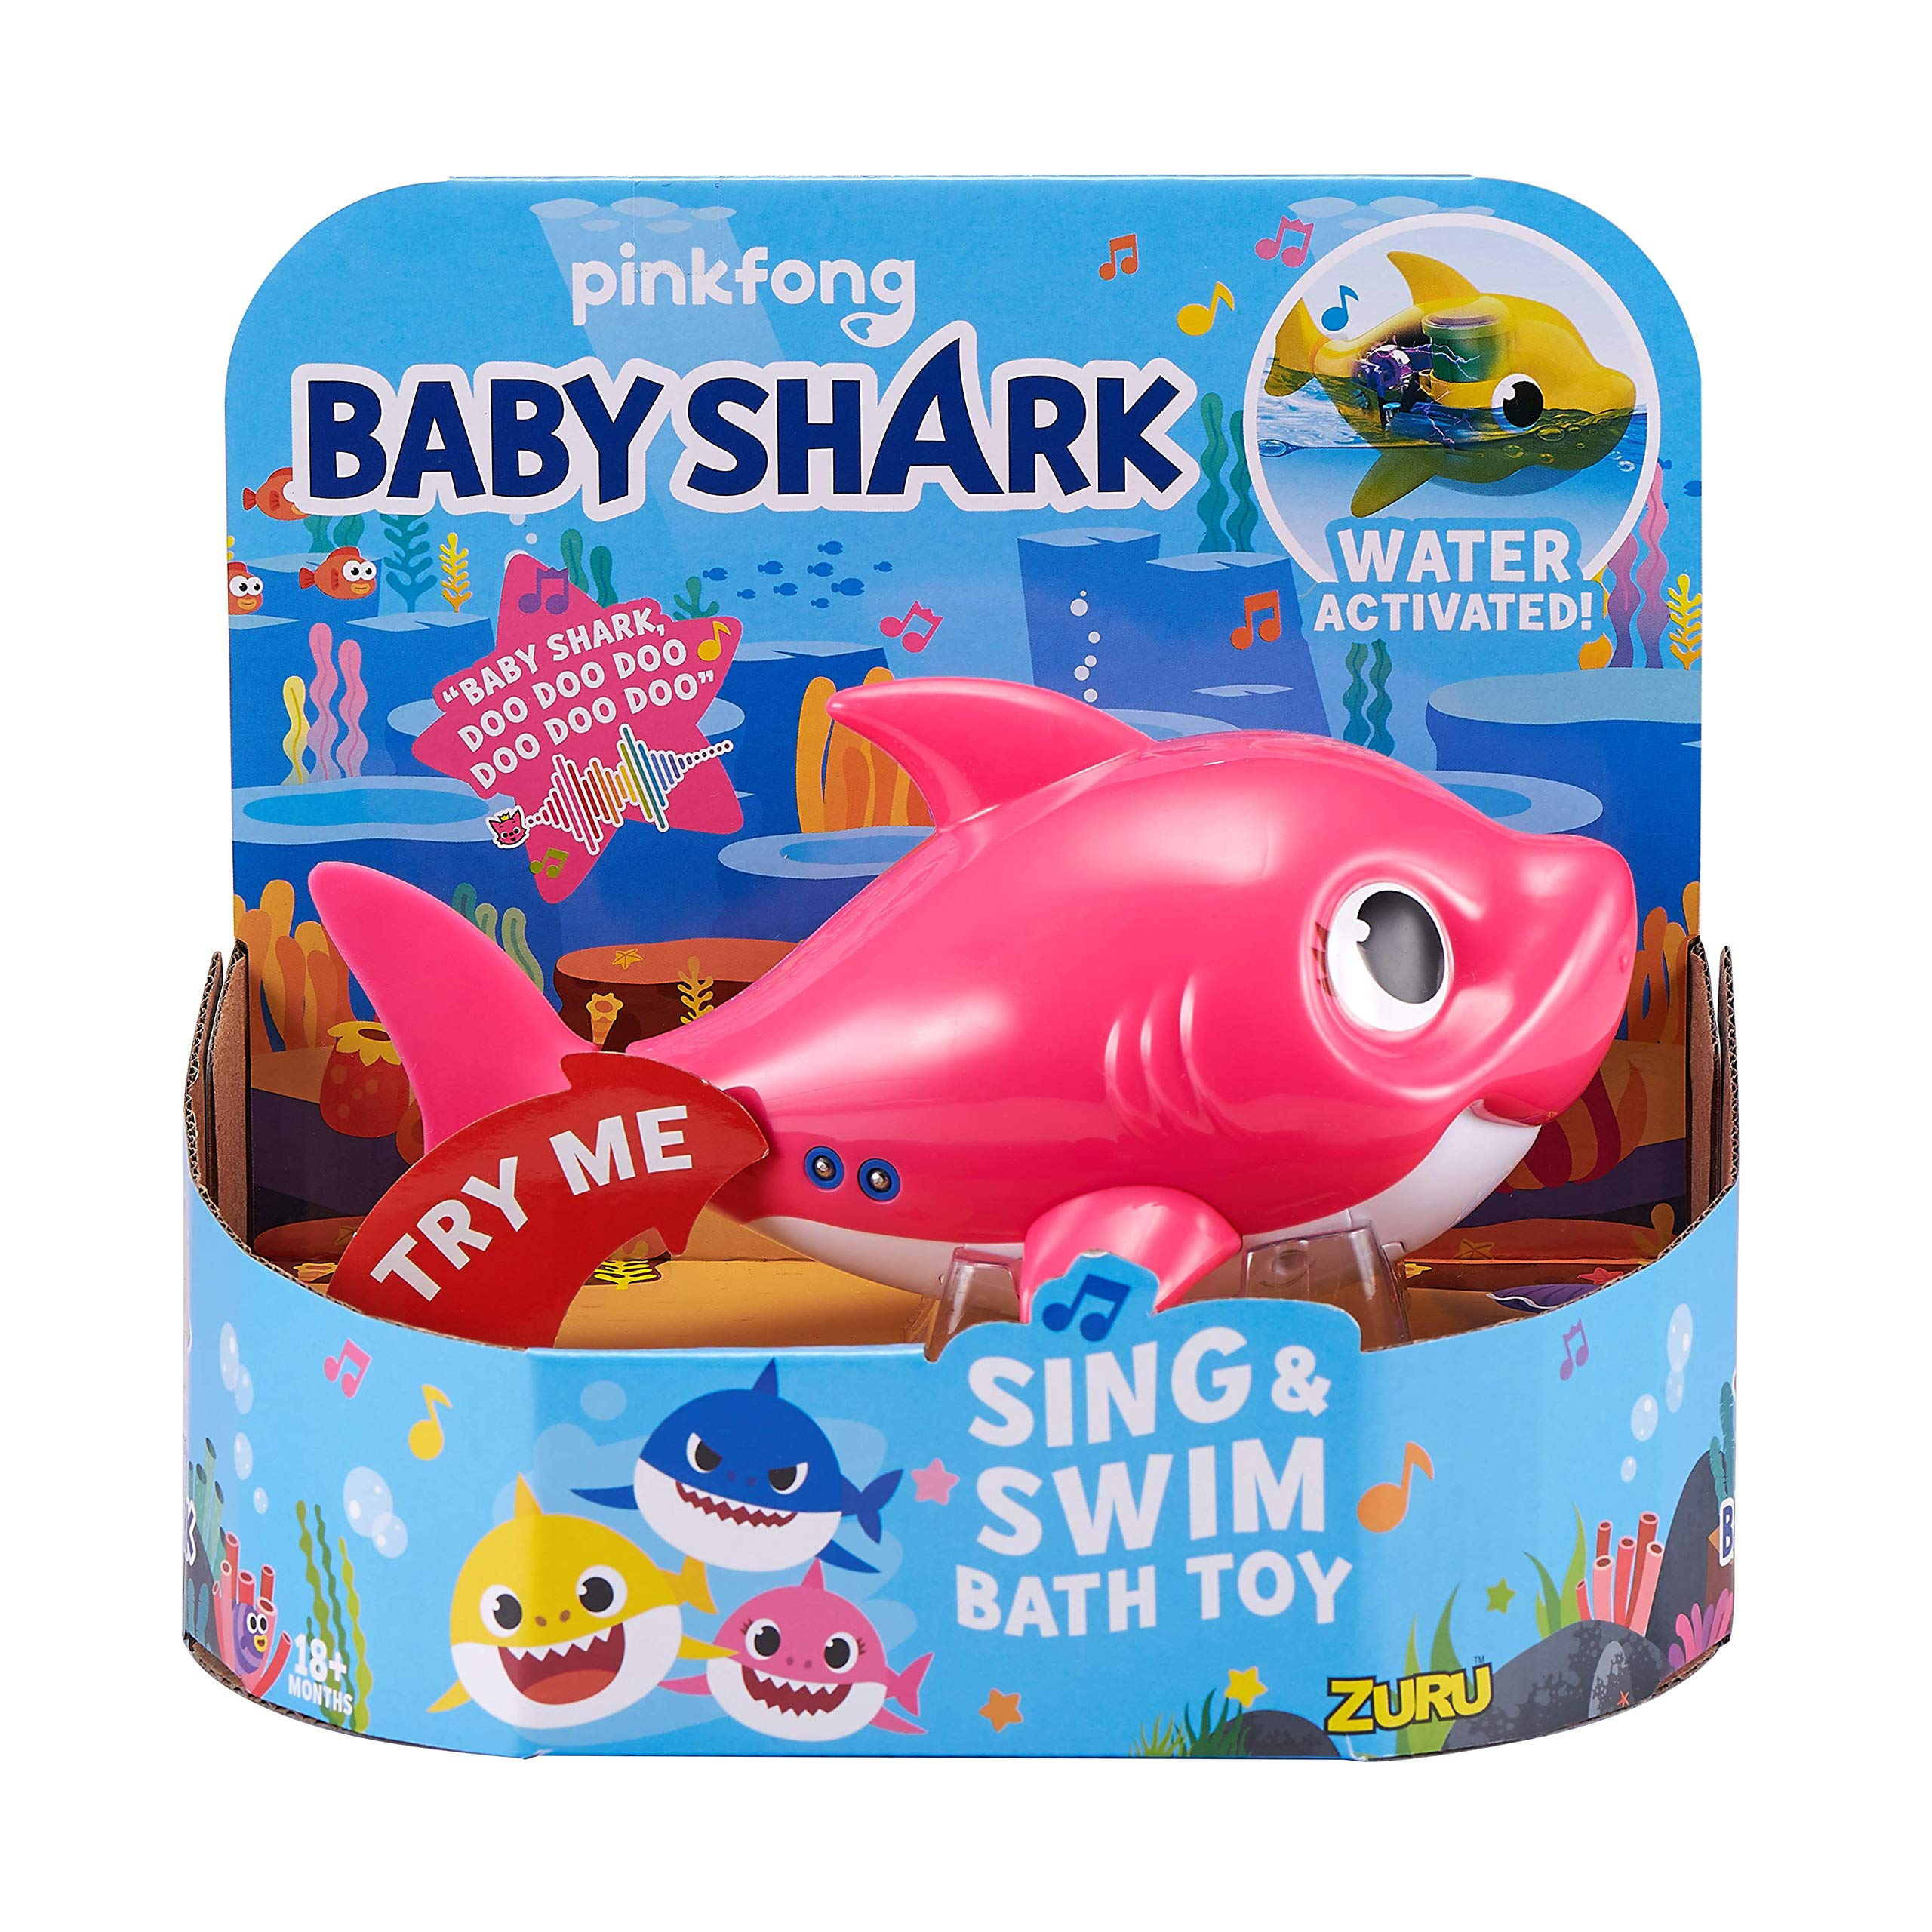 Robo Alive Junior Baby Shark Battery-Powered Sing and Swim Bath Toy by ZURU - Mommy Shark (Pink) by Robo Alive Junior (Image #1)